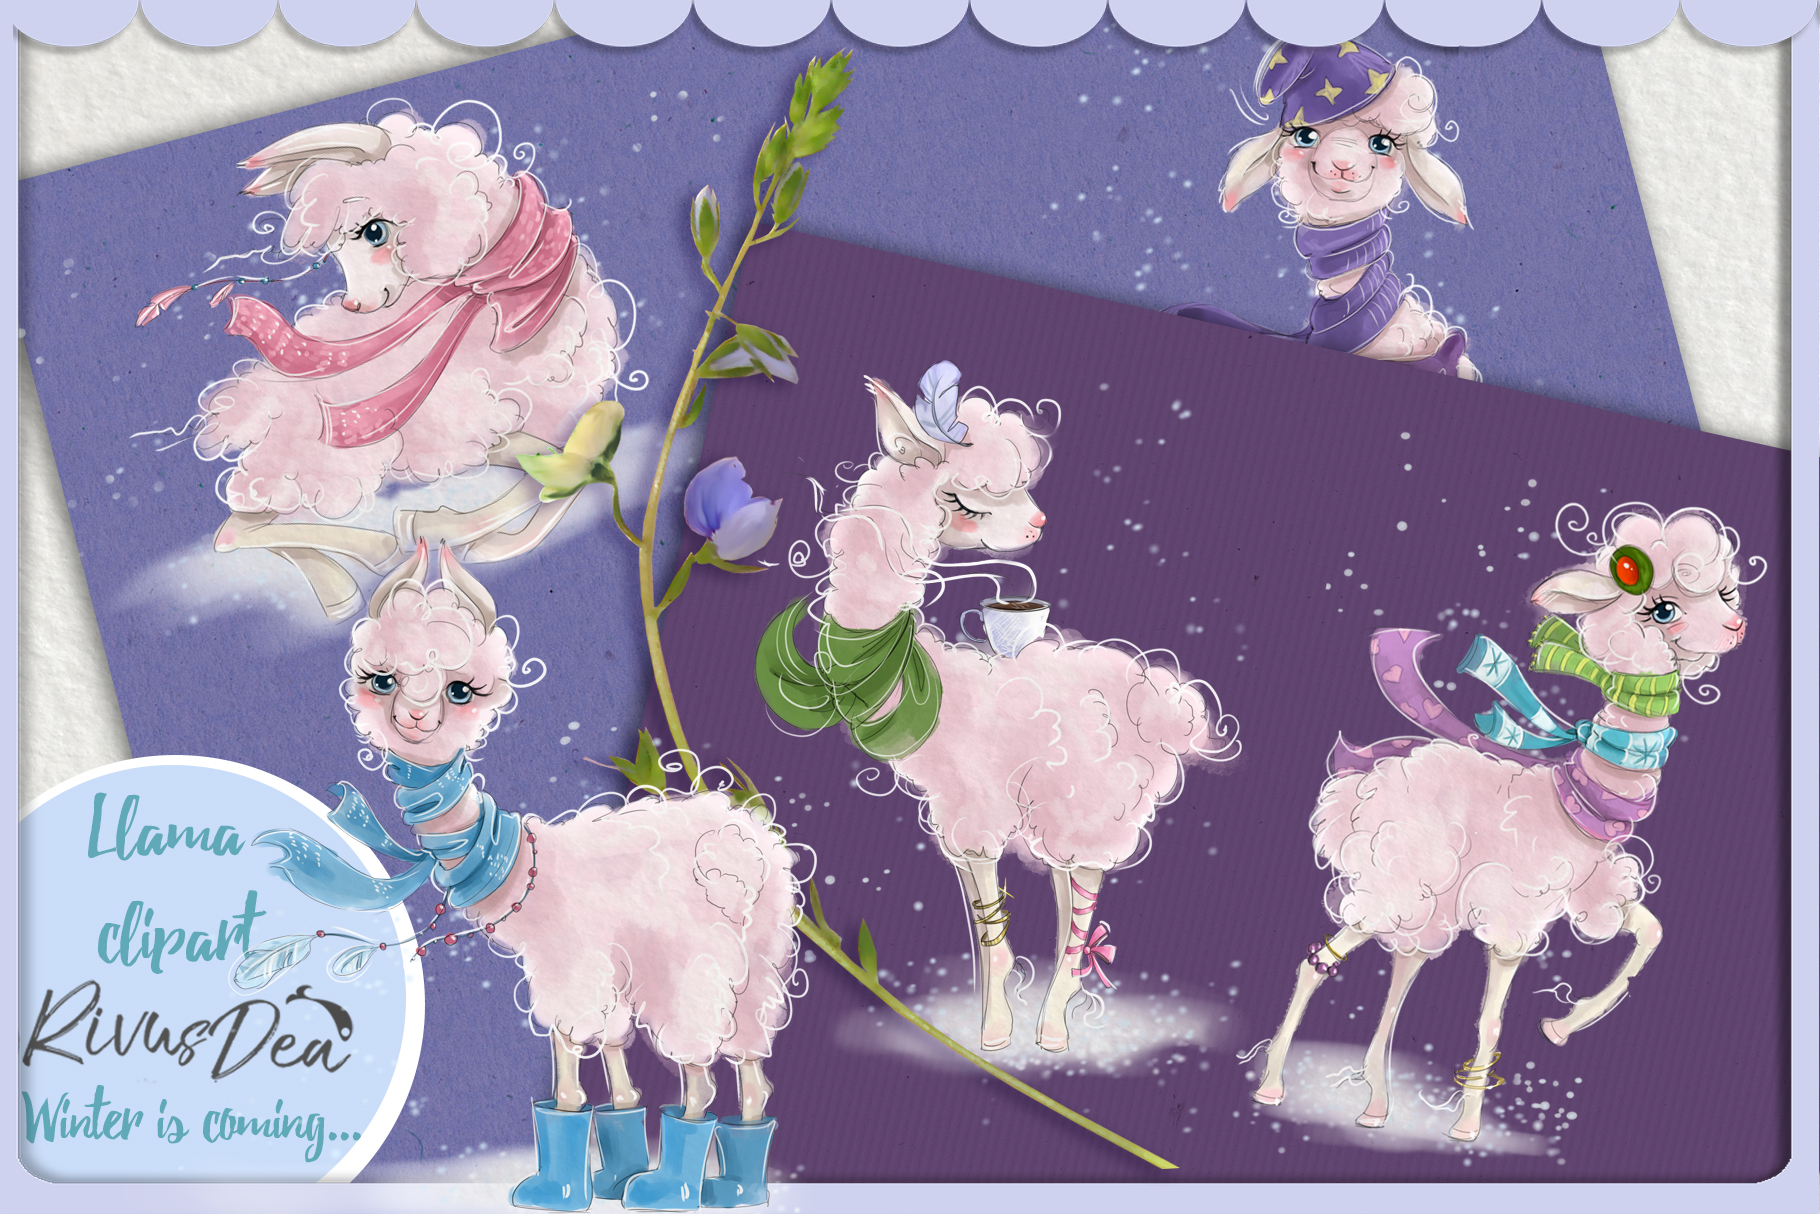 Cute llama alpaca clipart kit baby animals example image 1